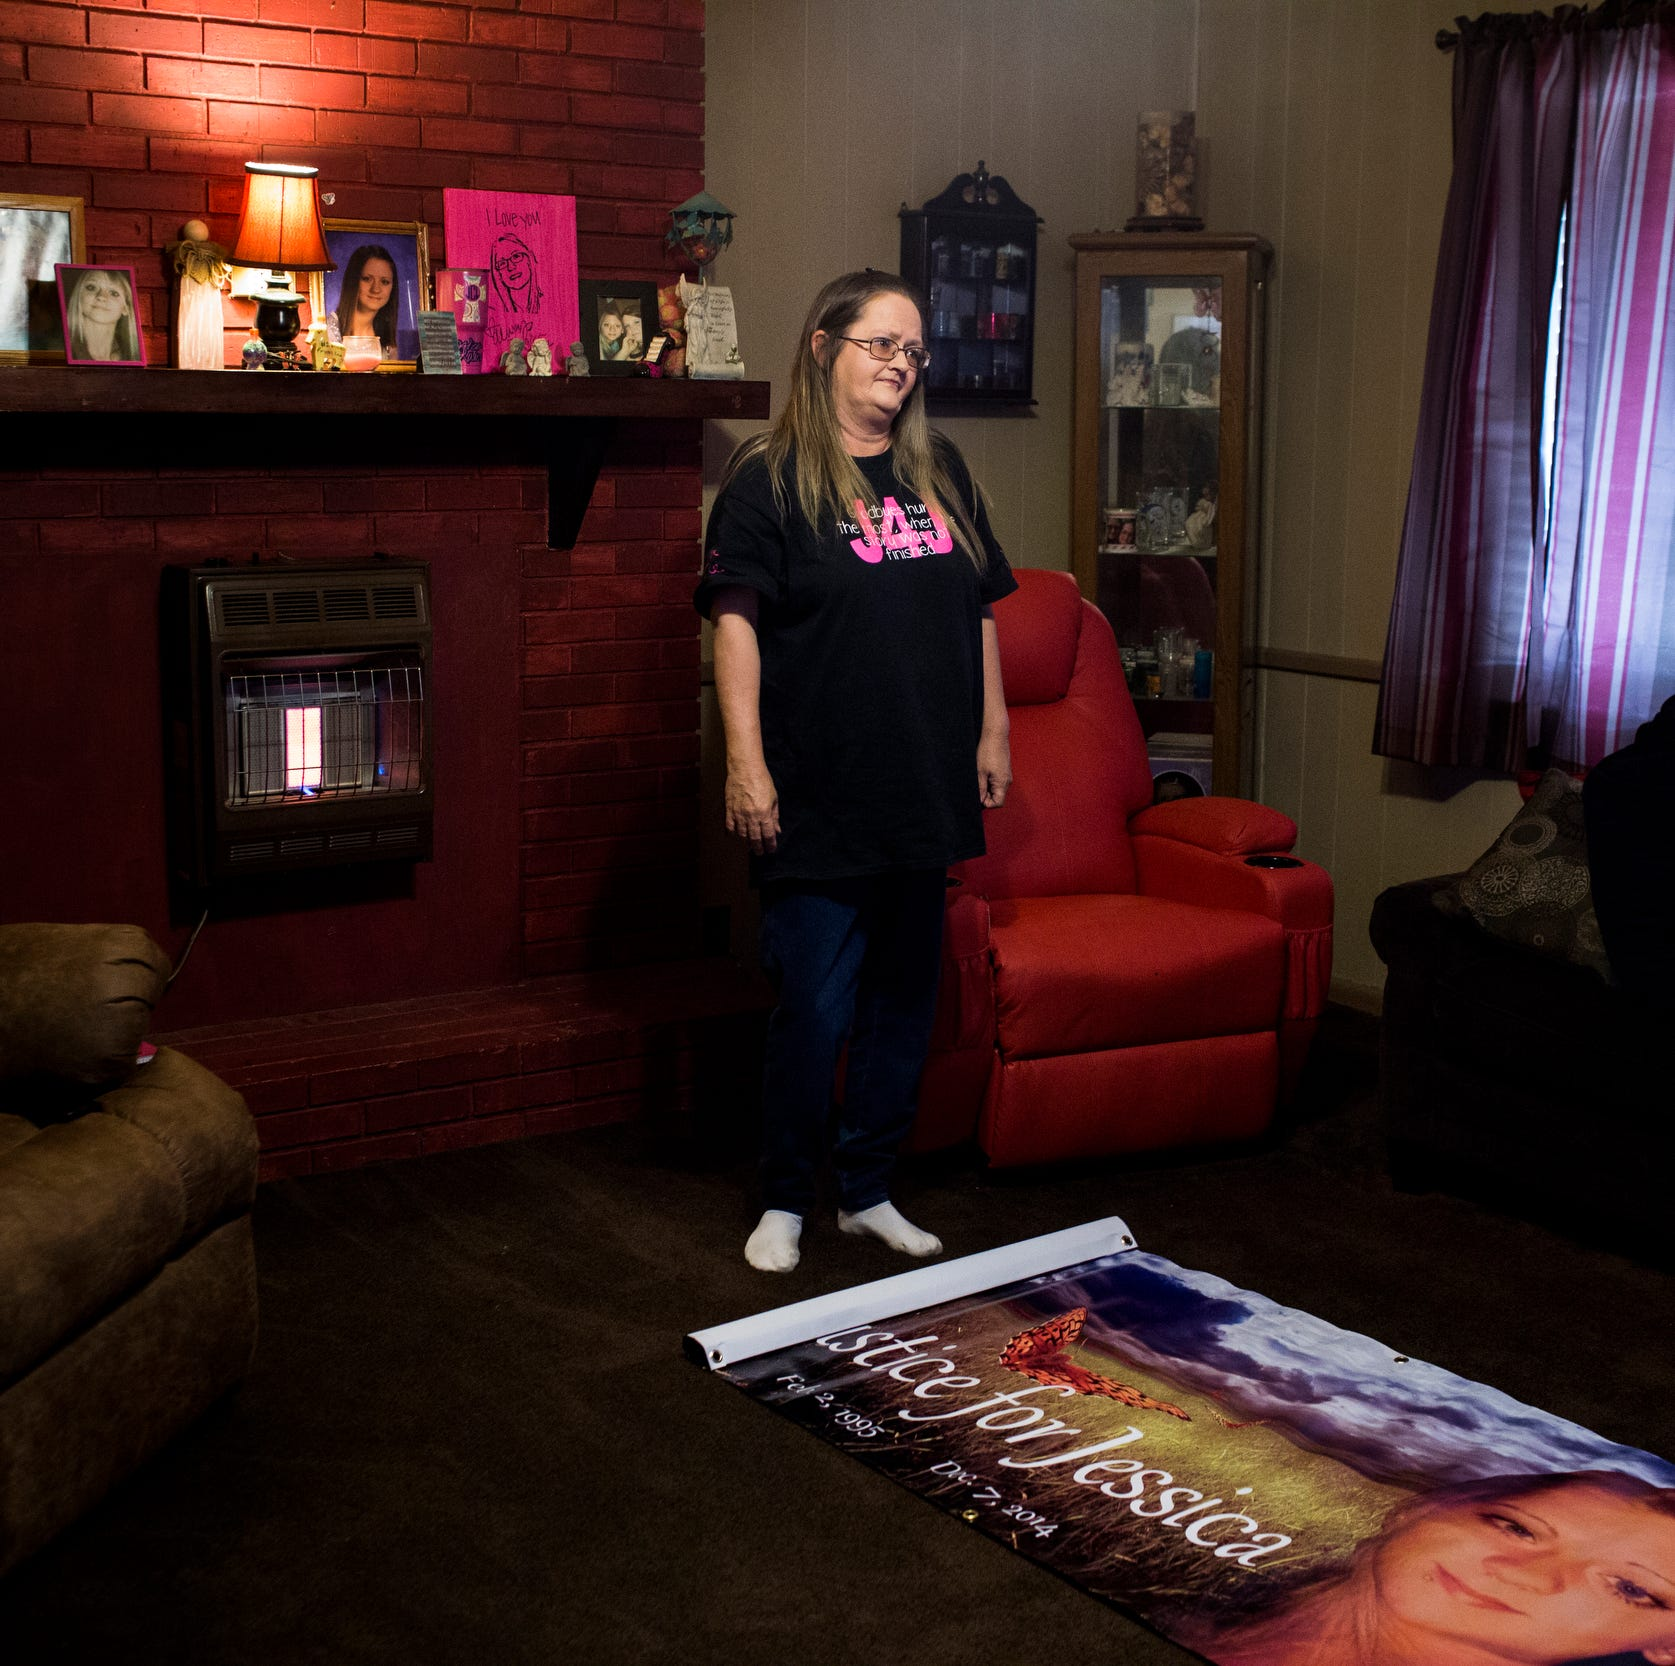 After four years and two trials, Jessica Chambers is still in the soul of Courtland